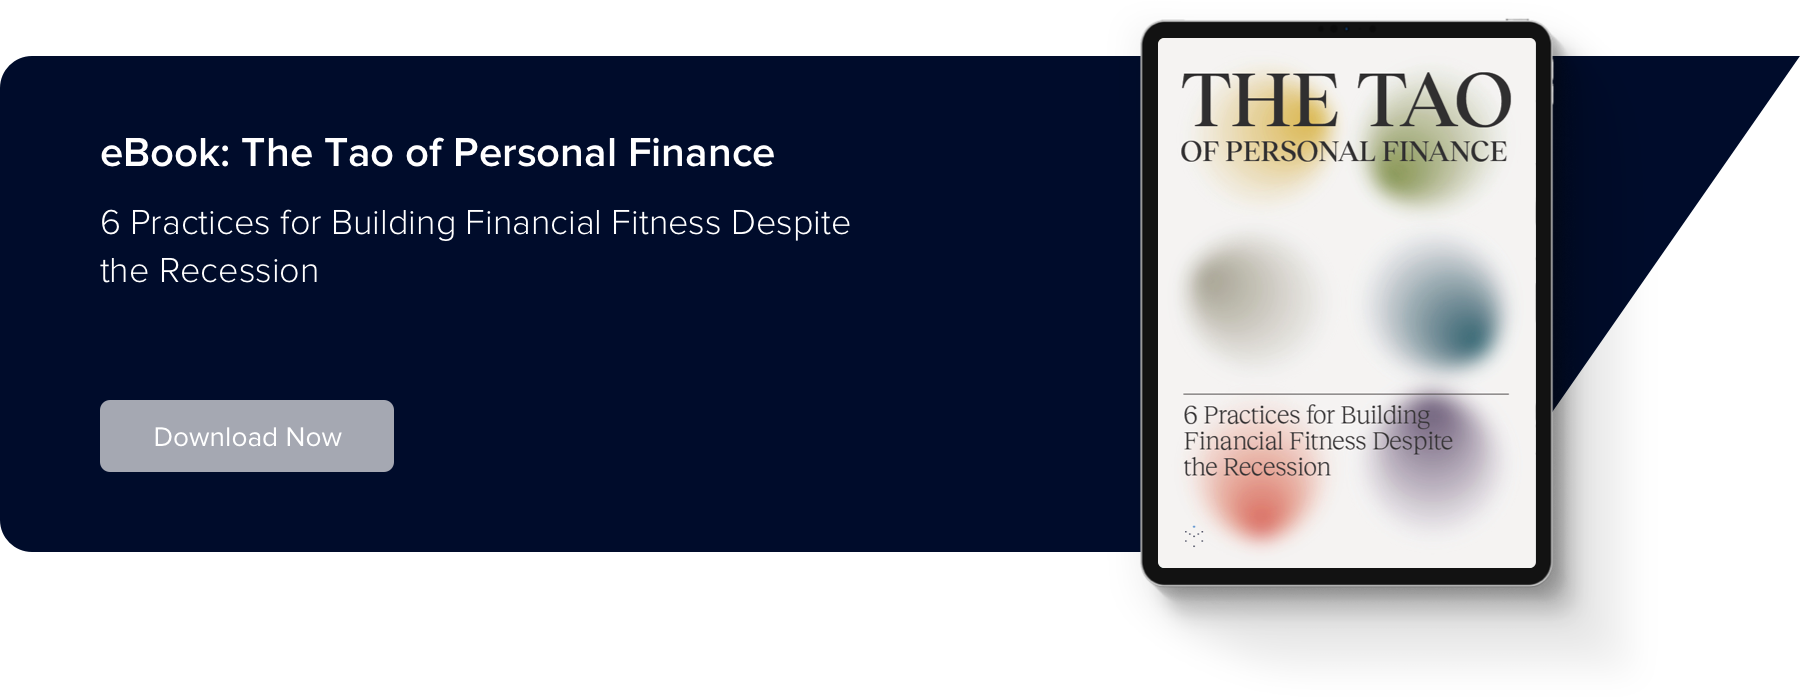 Tao of Personal Finance eBook